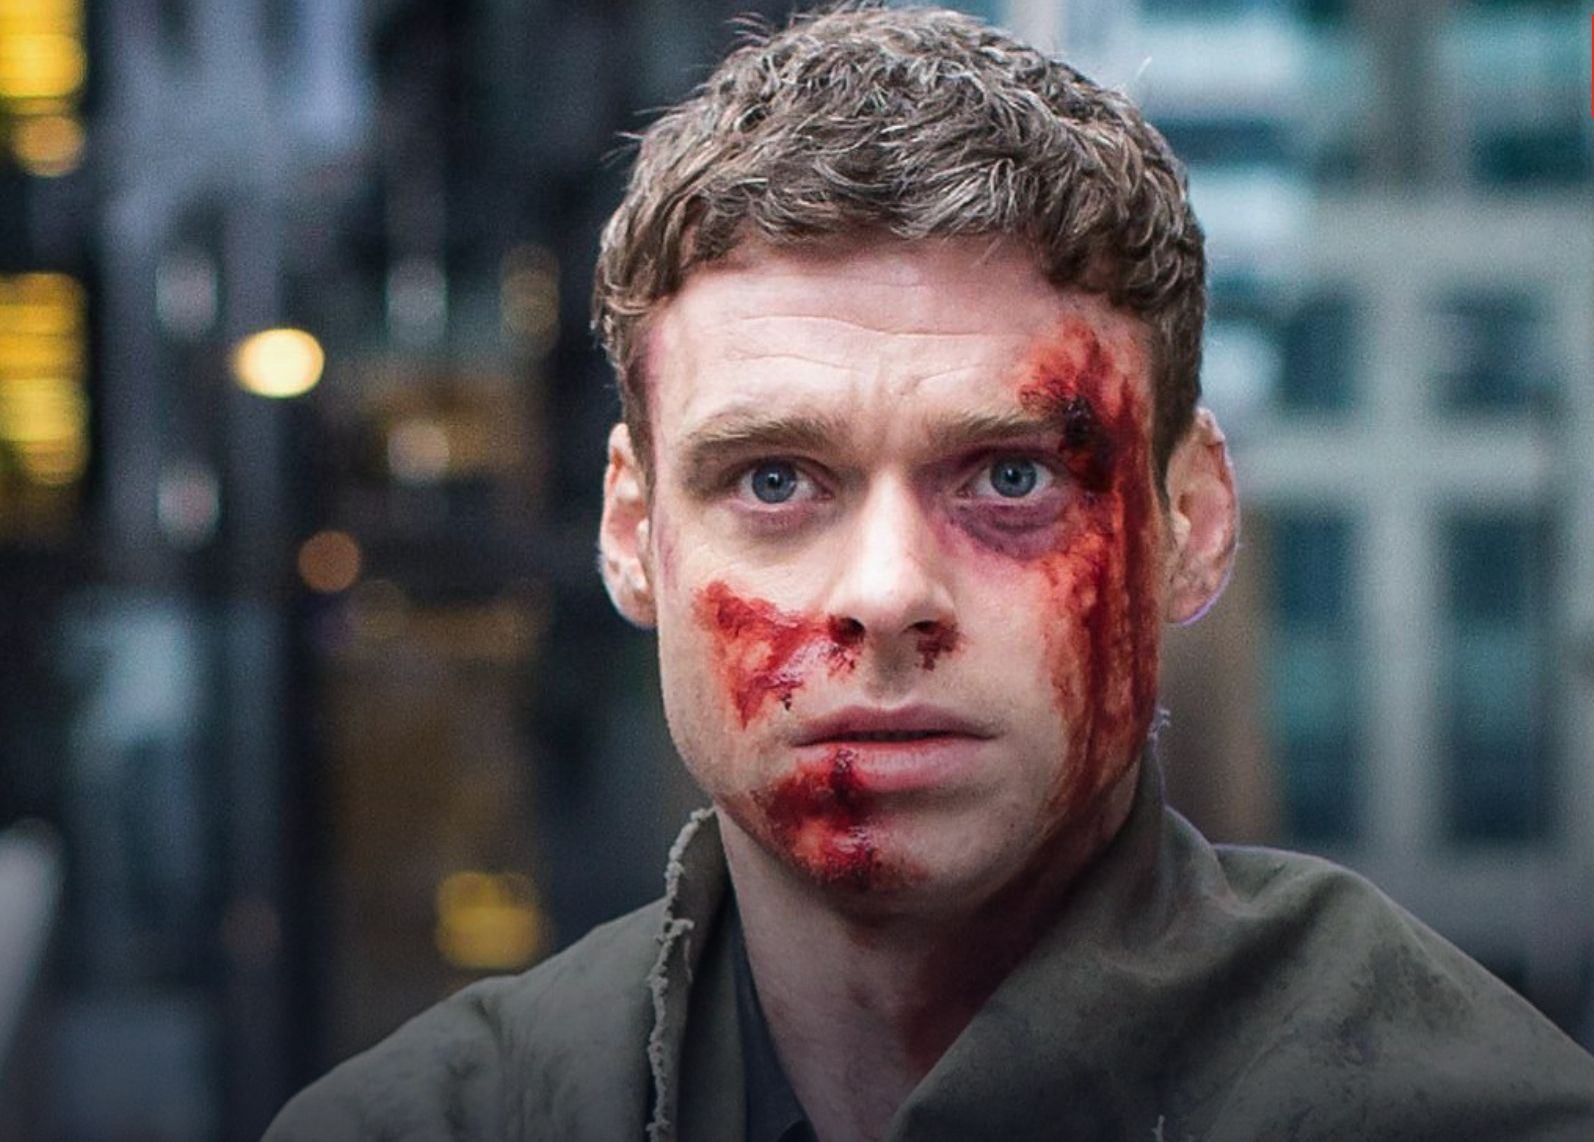 Bodyguard Gave Us A Properly Nuanced View Of One Man Facing Mental Health Problems – Long May It